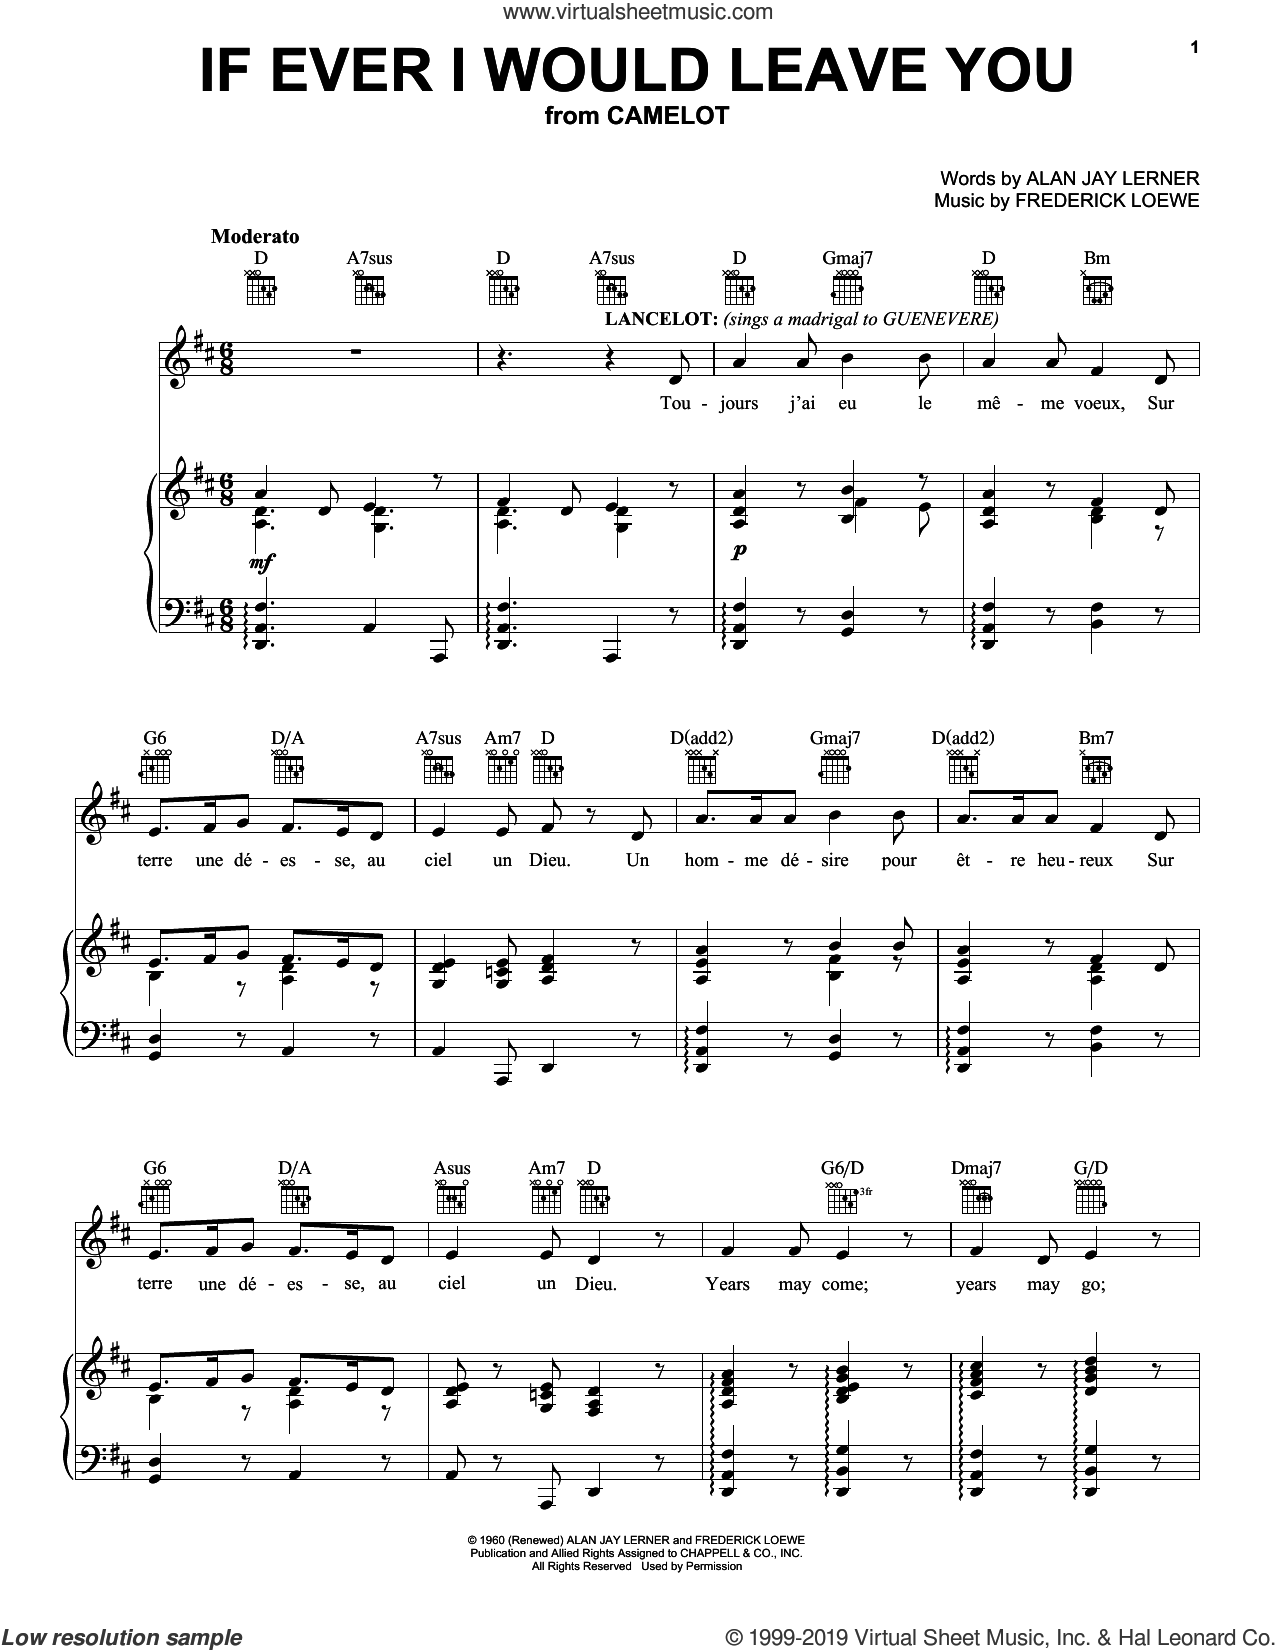 If Ever I Would Leave You sheet music for voice, piano or guitar by Alan Jay Lerner and Frederick Loewe, intermediate skill level